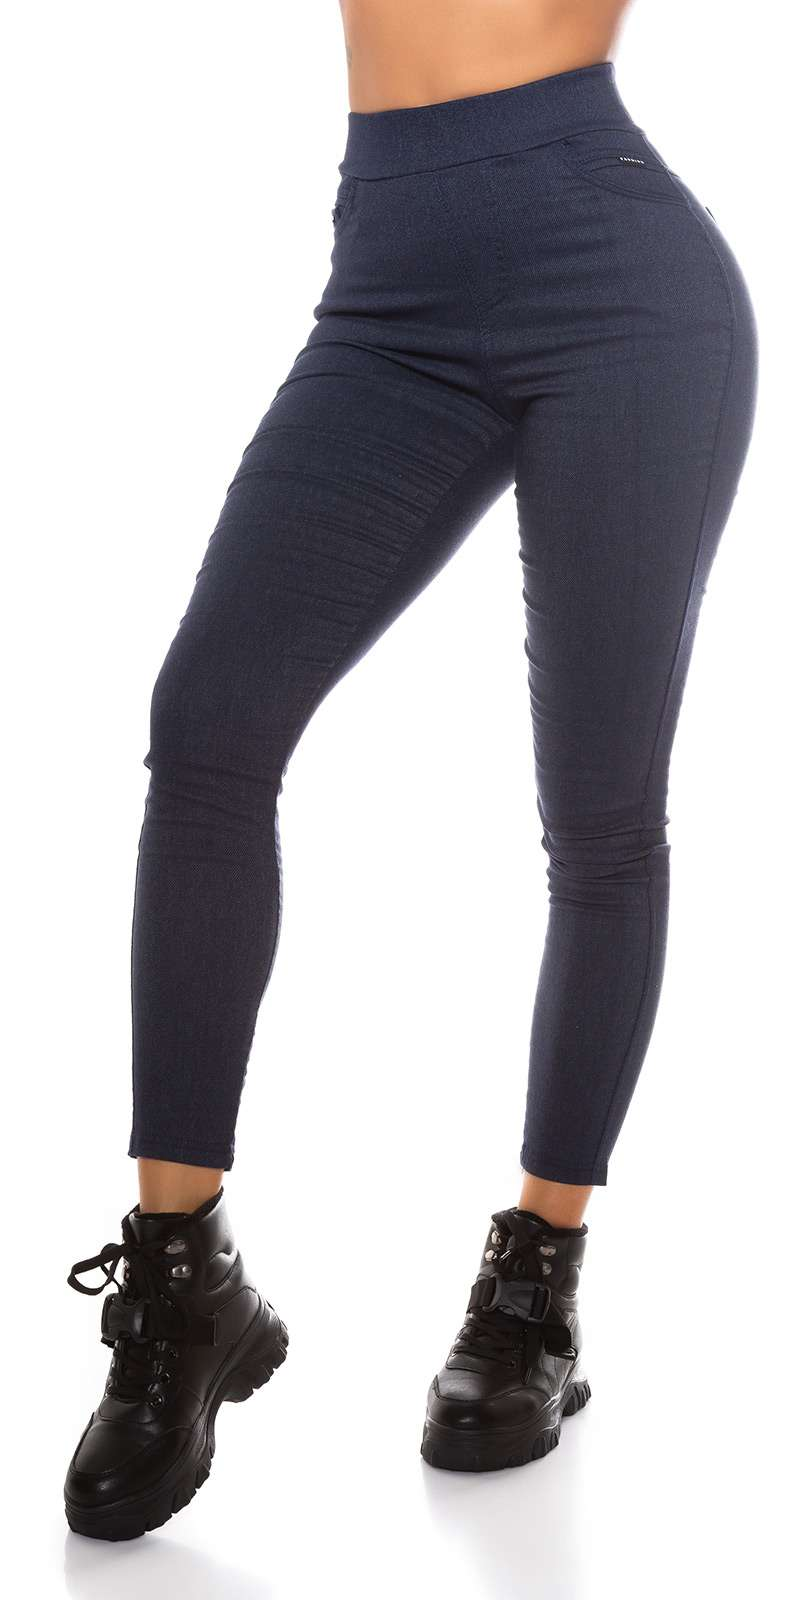 French Cut Jeggings